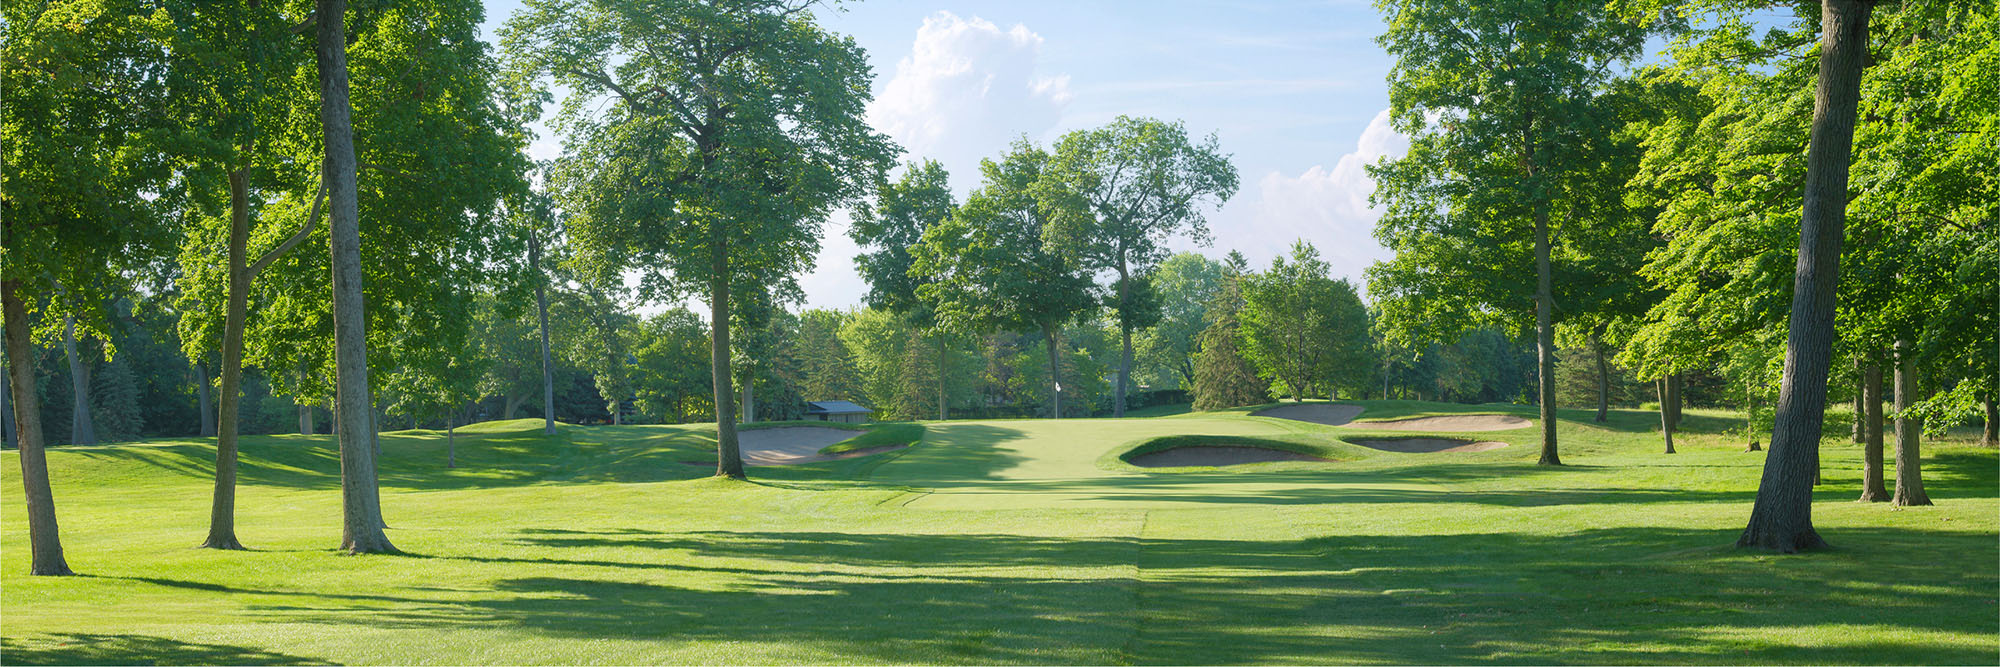 Golf Course Image - Hazeltine No. 4